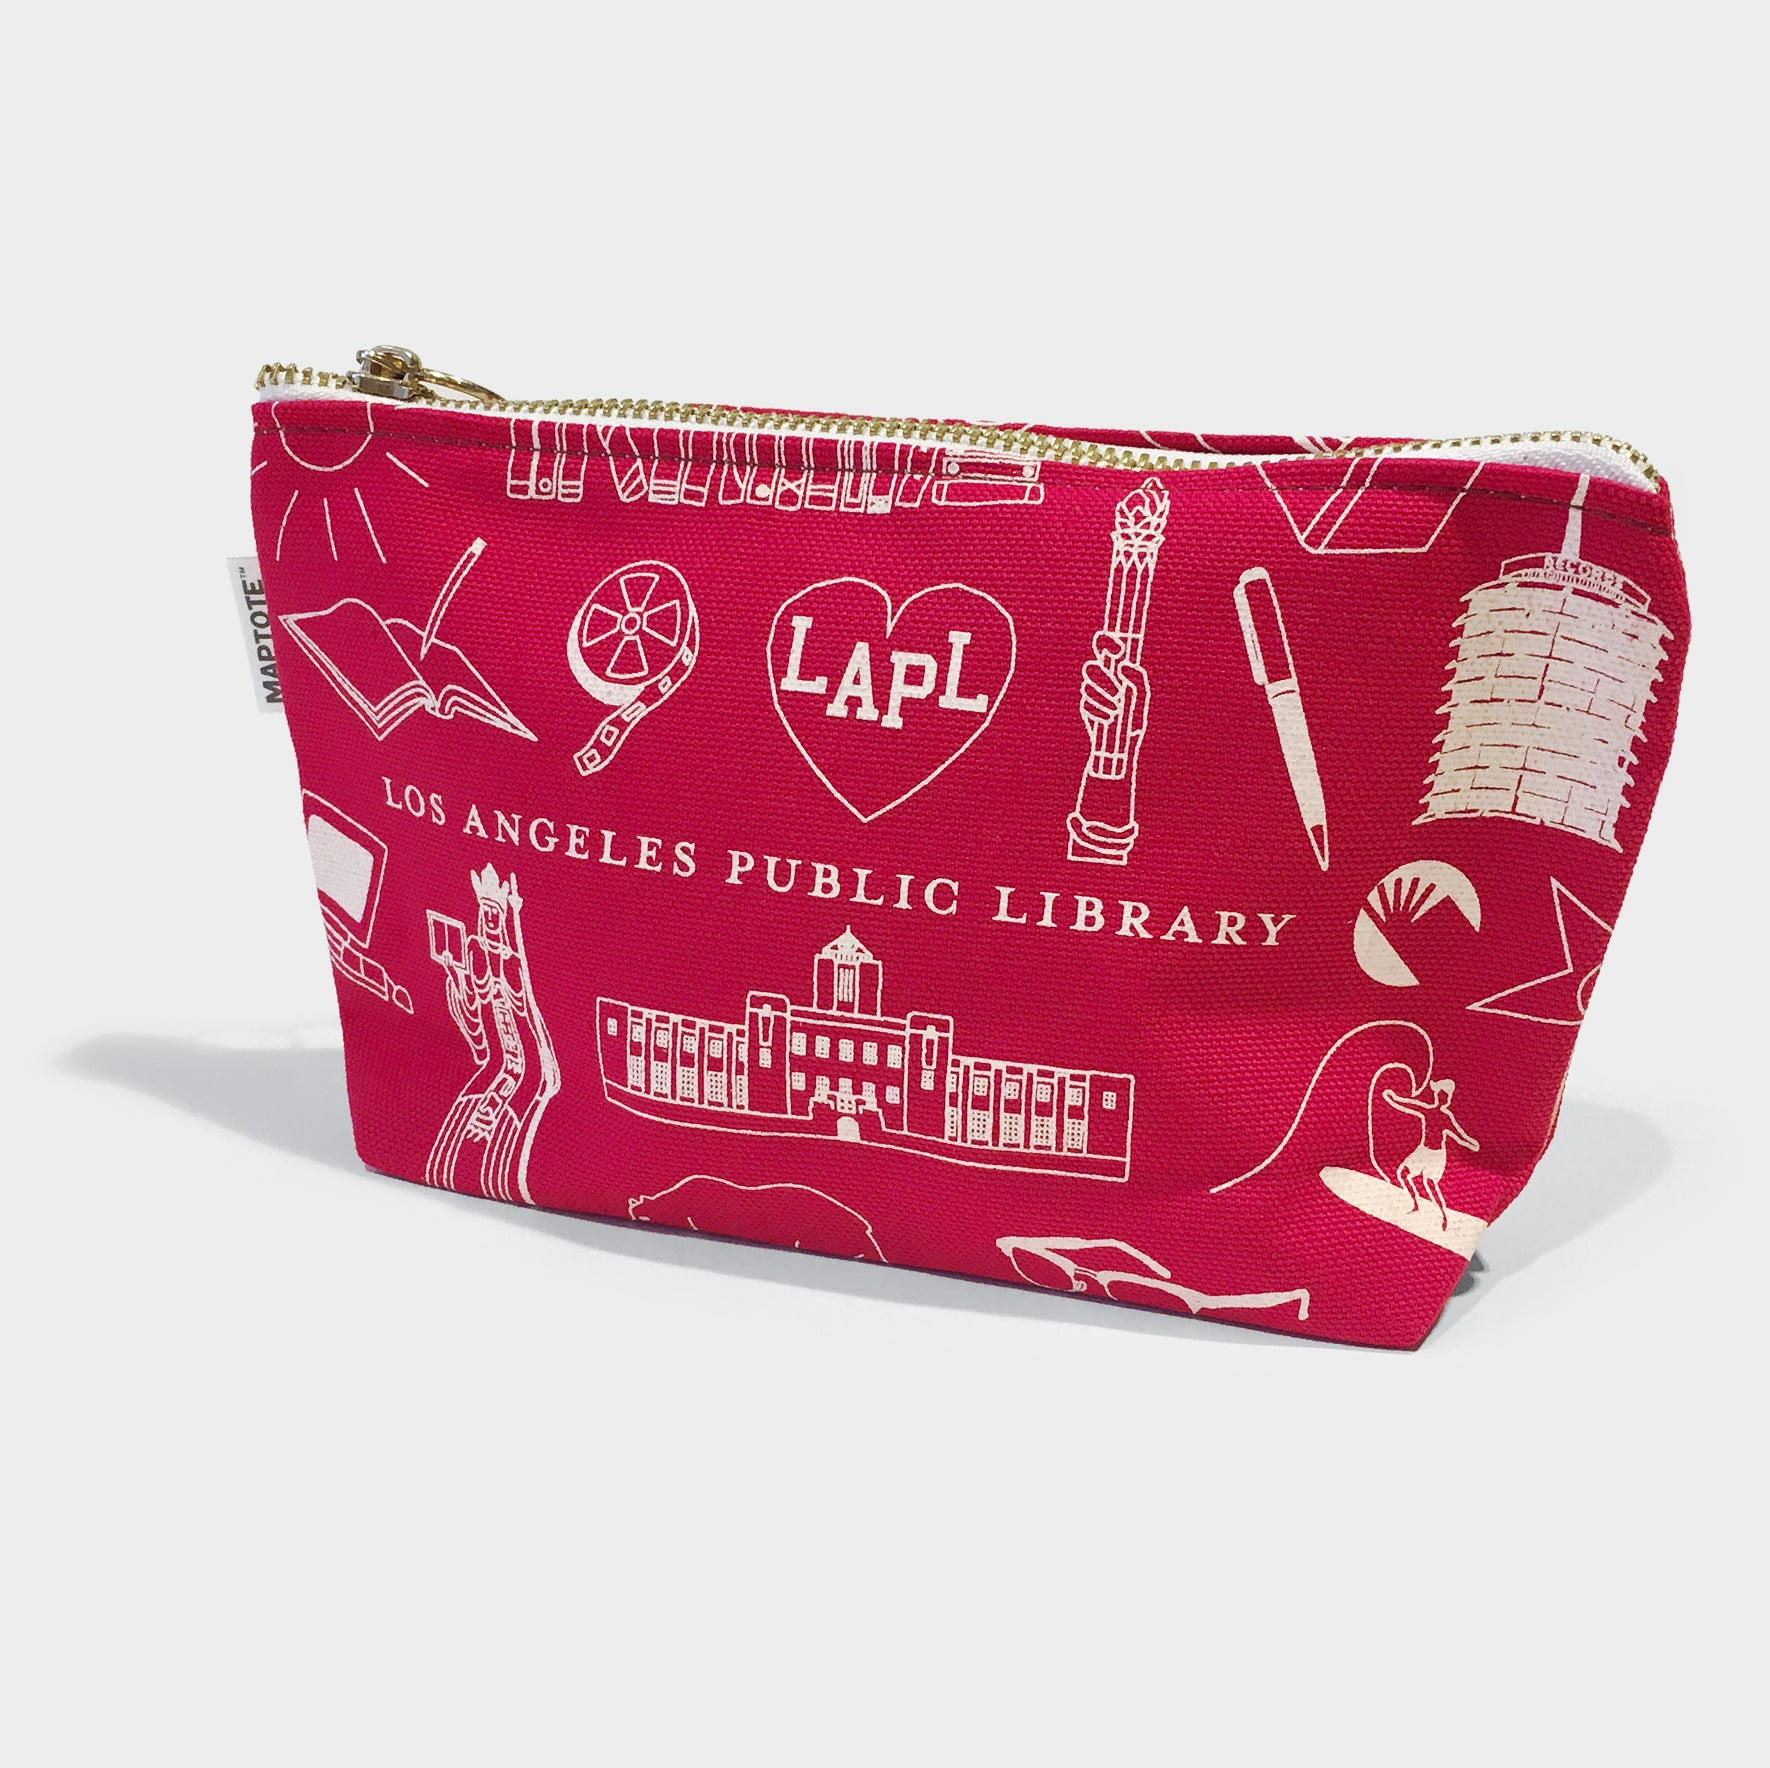 Maptote X LAPL Zip Pouch